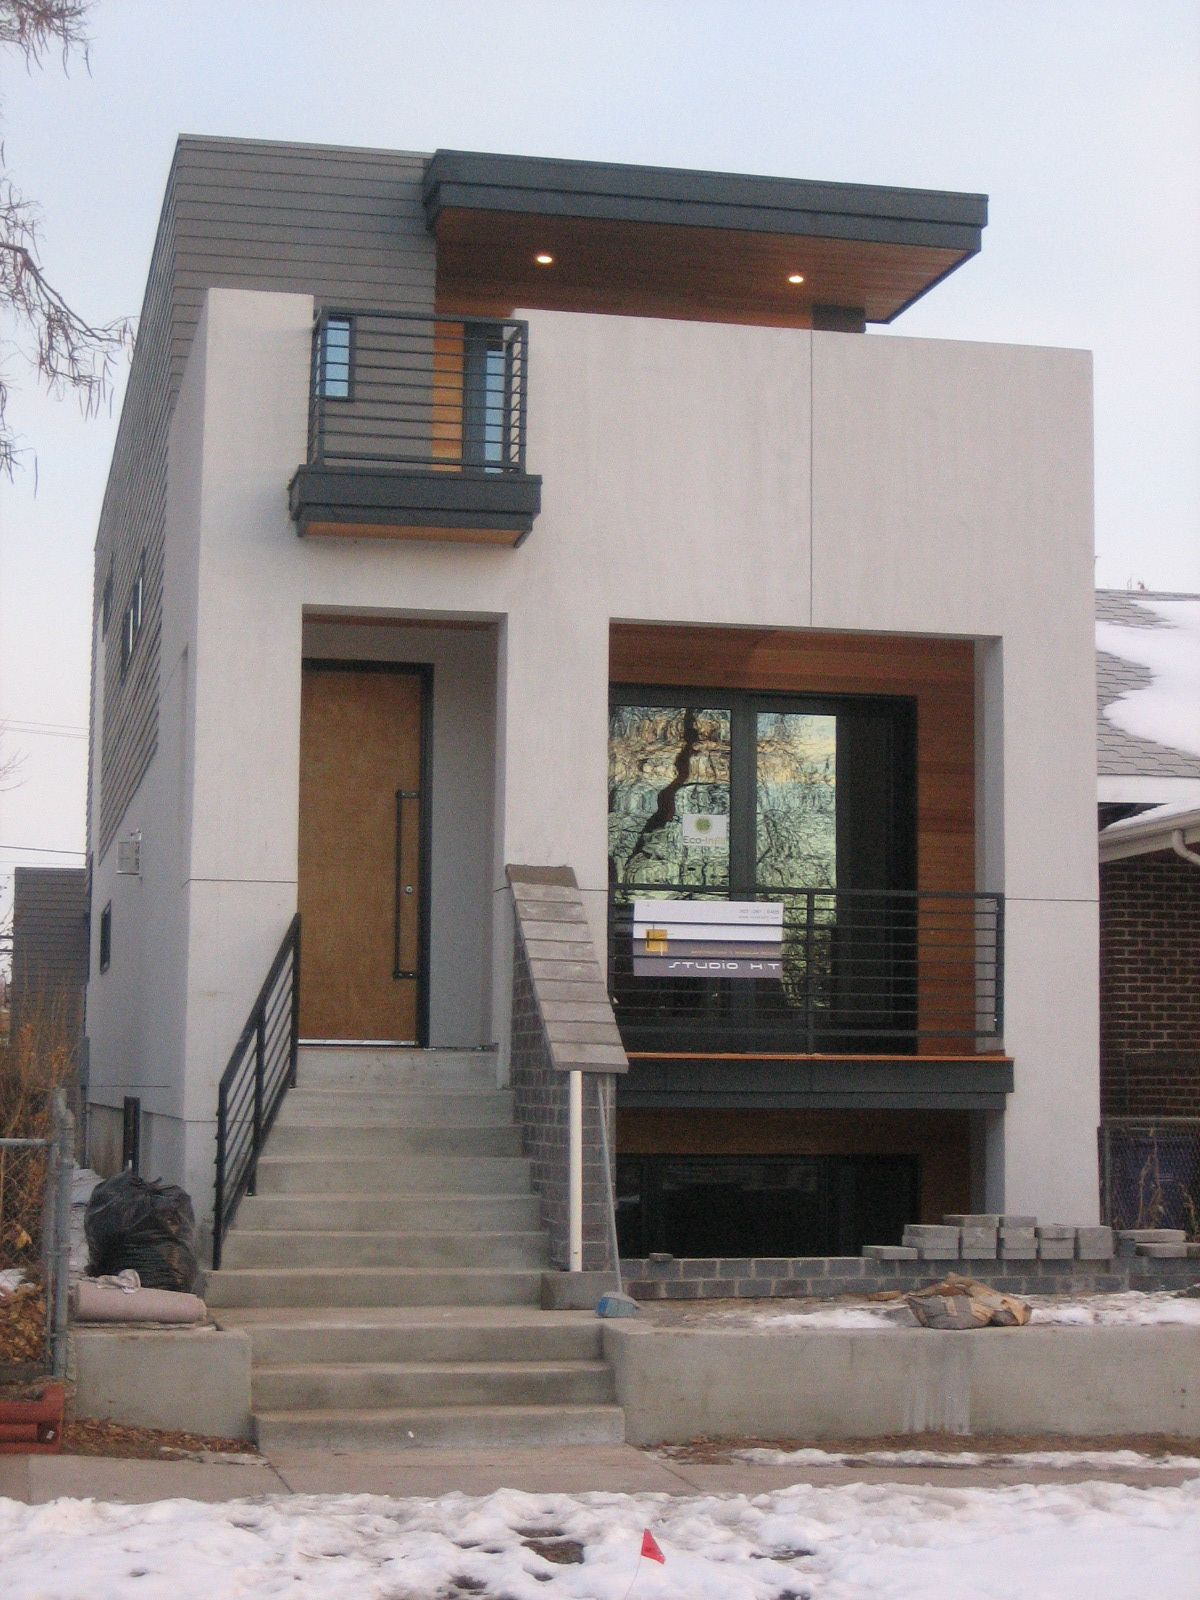 Super Small House Plans Elegant Architecture Inspiration Admirable Small House Types Plans